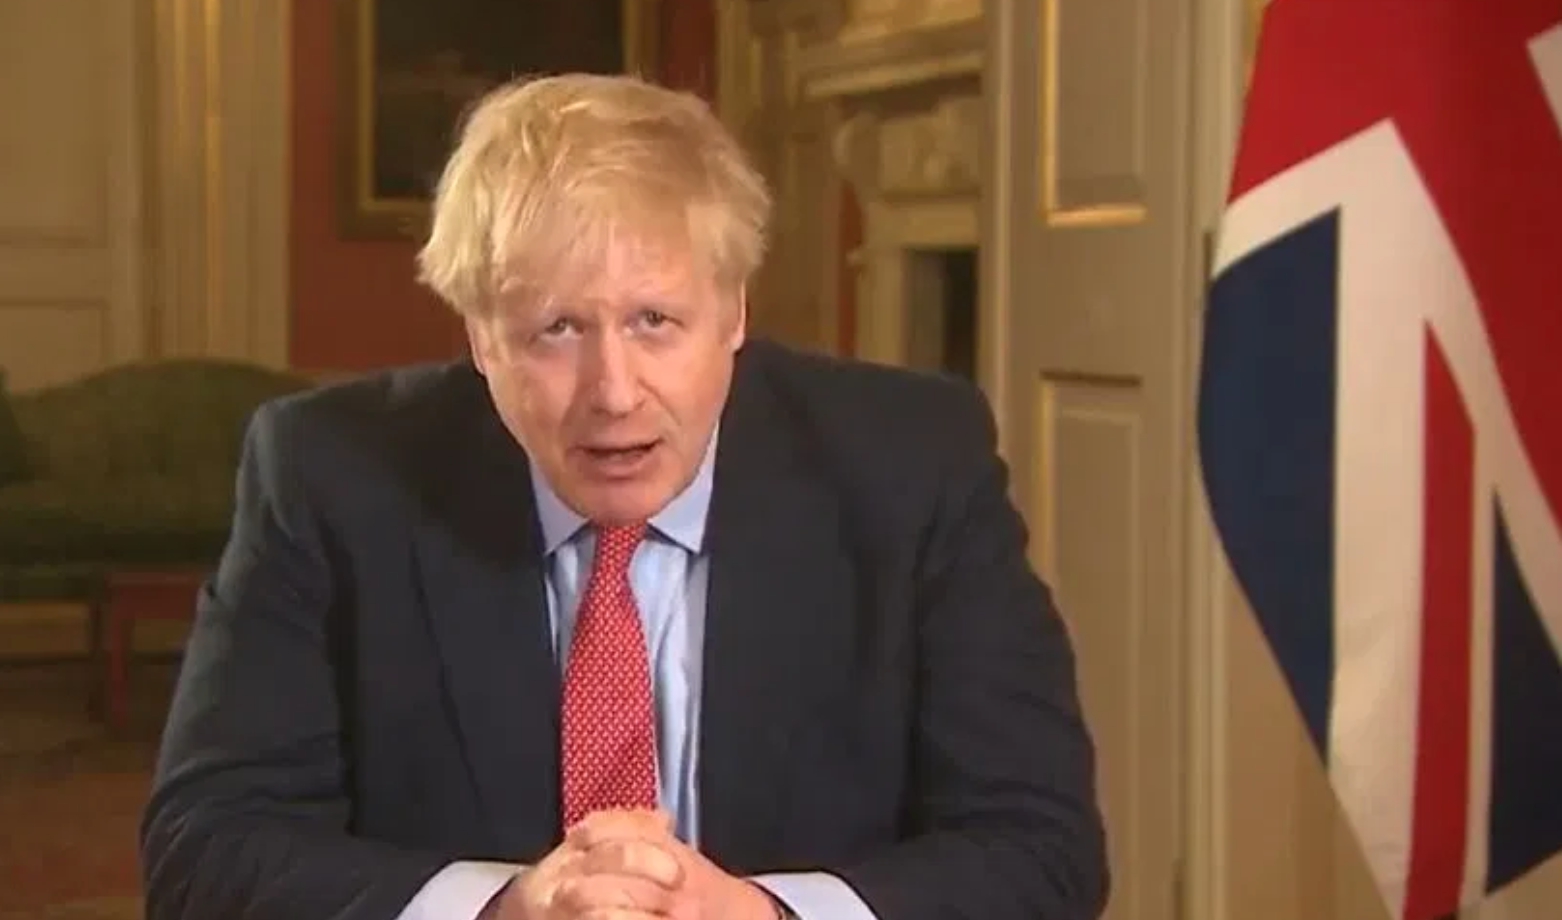 Above: Prime minister Boris Johnson delivering the news that more stringent measures have been put in place in an attempt to stem the spread of the virus.